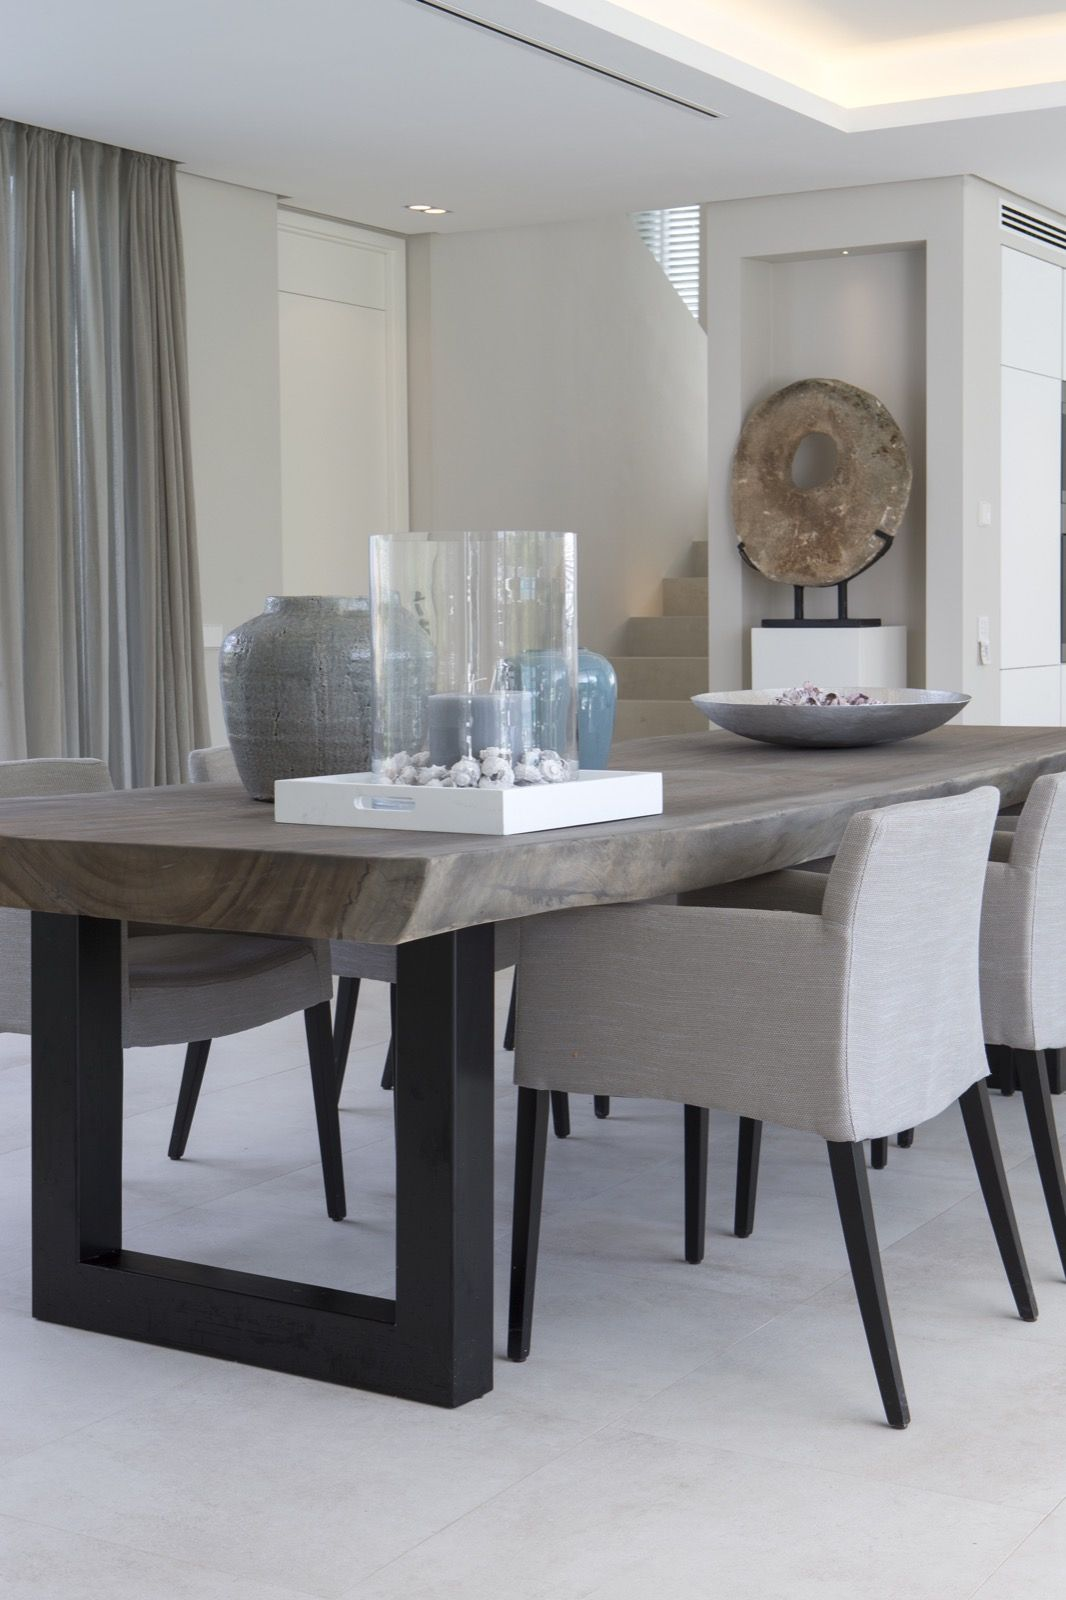 Table Inspiration So You Know How To Usem Them In Your Mid Century Modern Dining Table Design Modern Dining Room Furniture Modern Contemporary Dining Room Sets